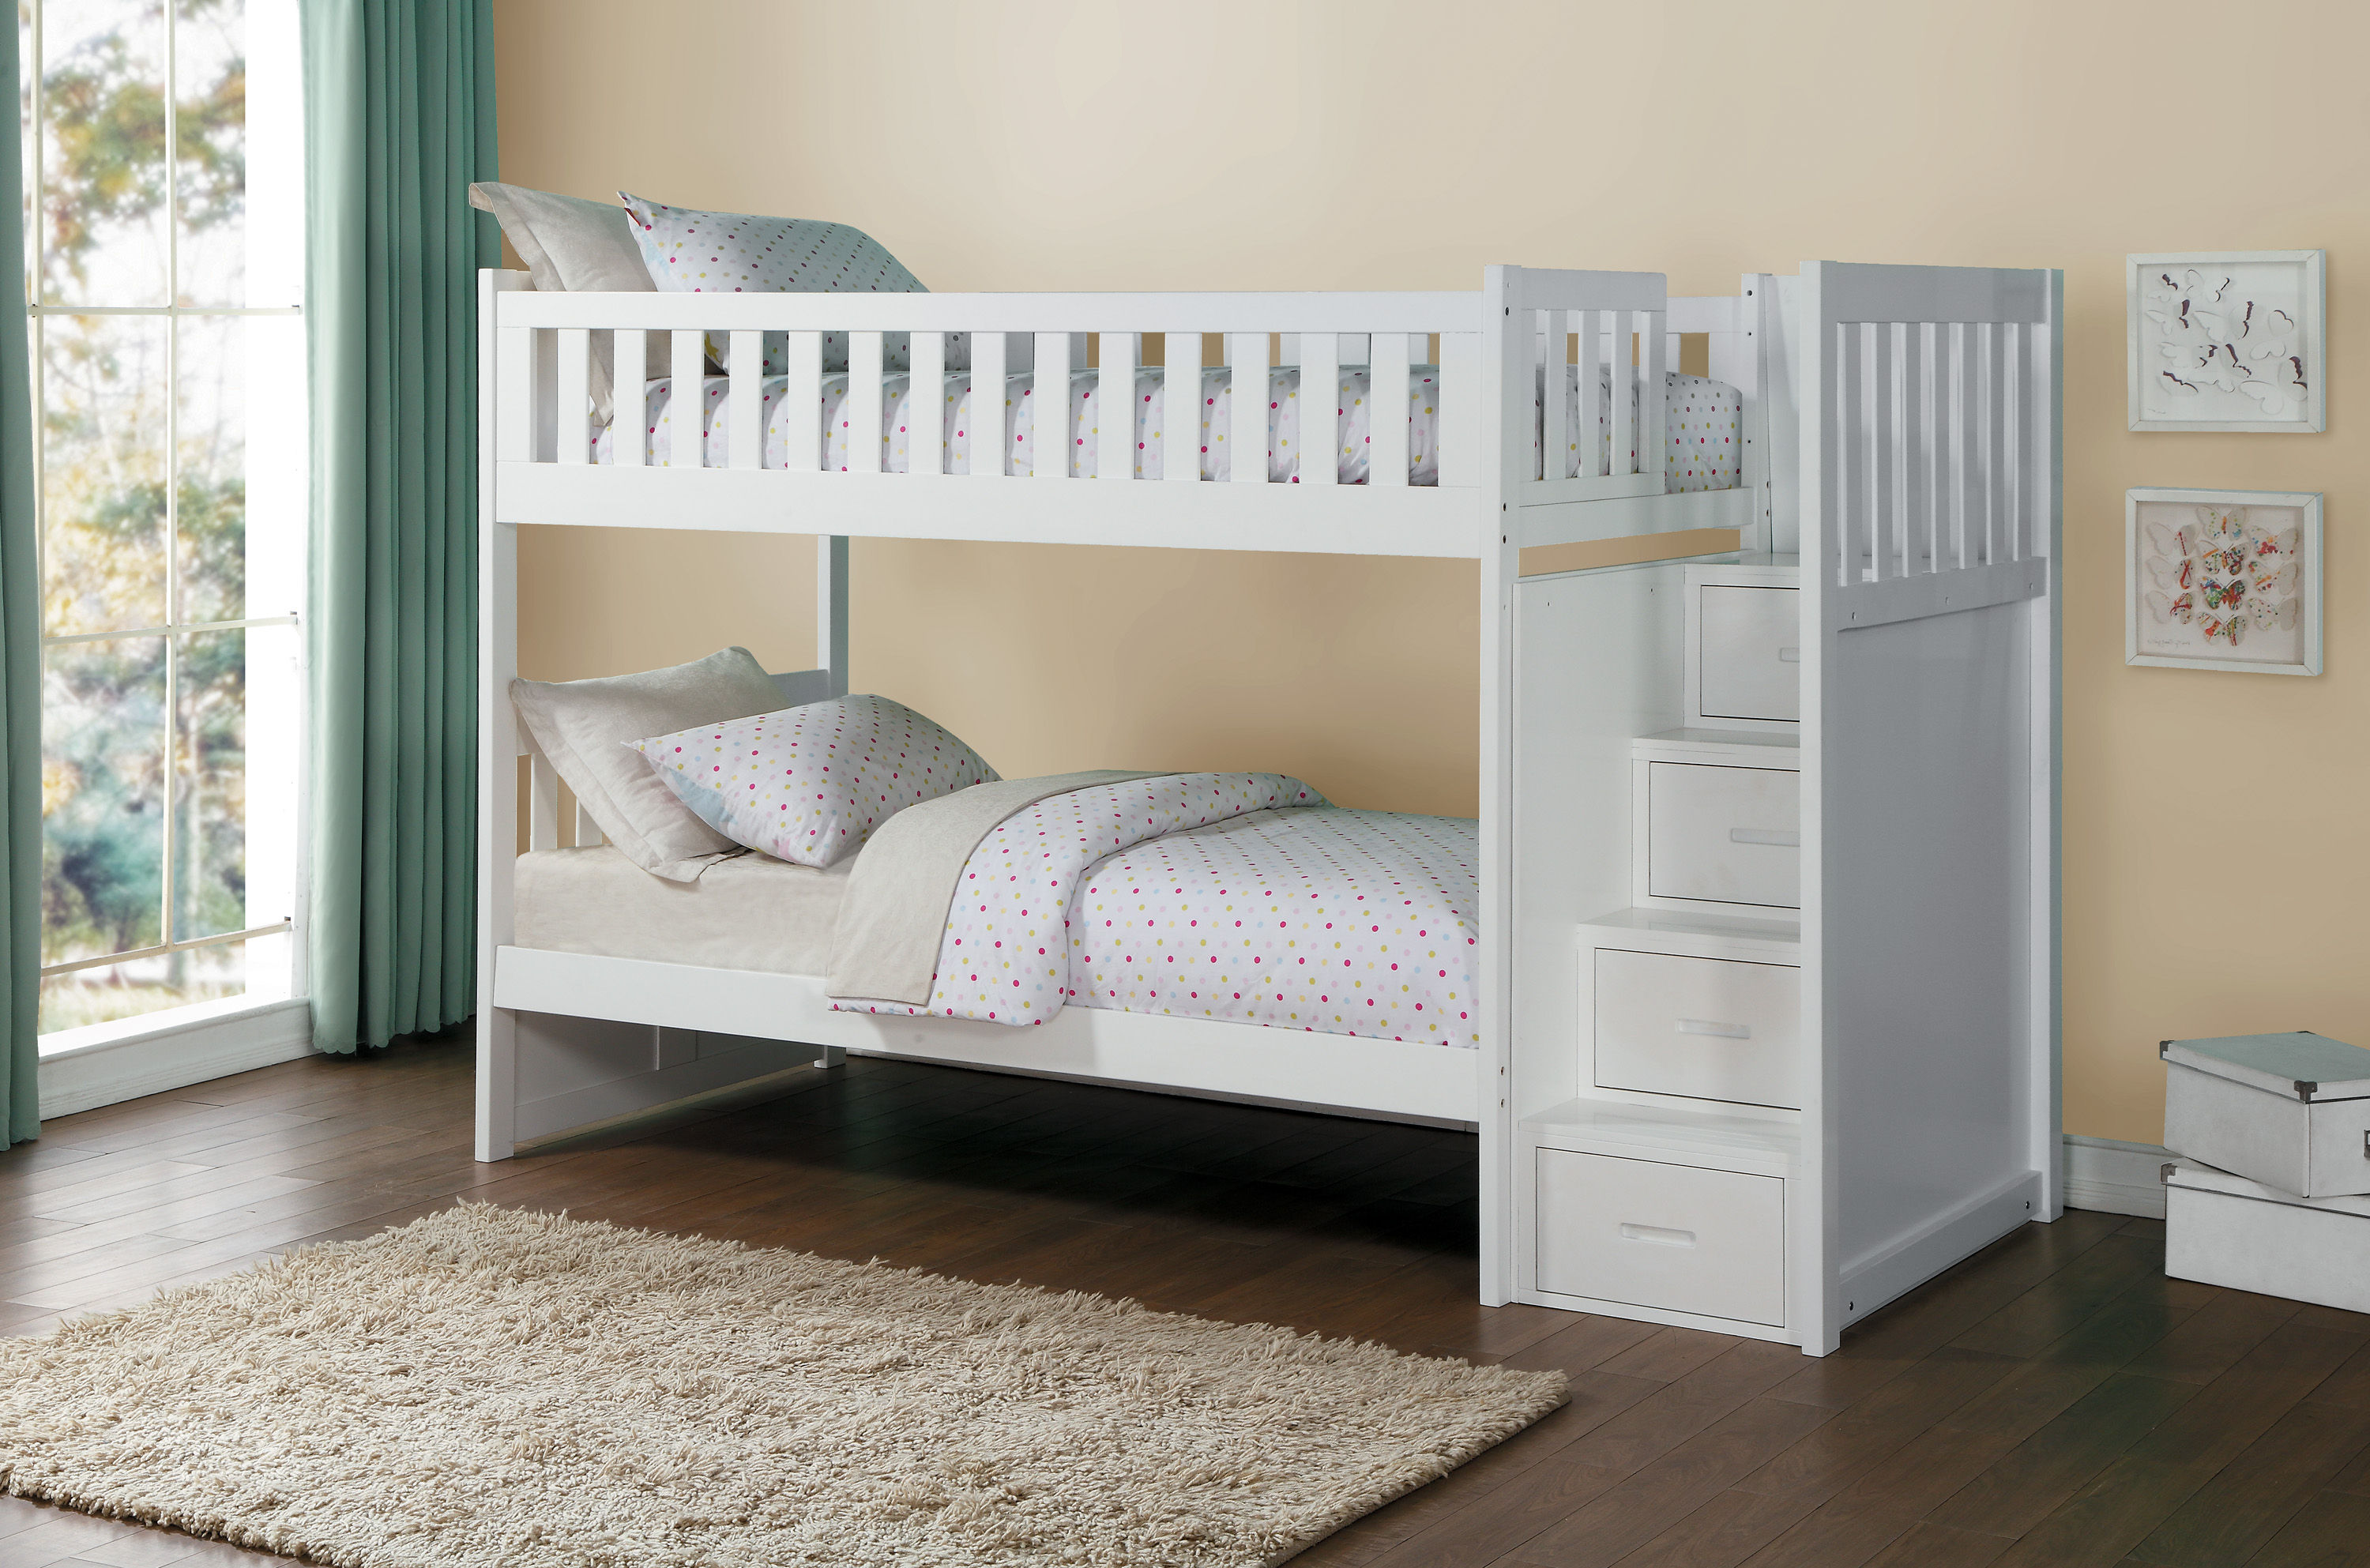 Home Elegance Galen White 2pc Kids Bedroom Set With Bunk Bed | The ...